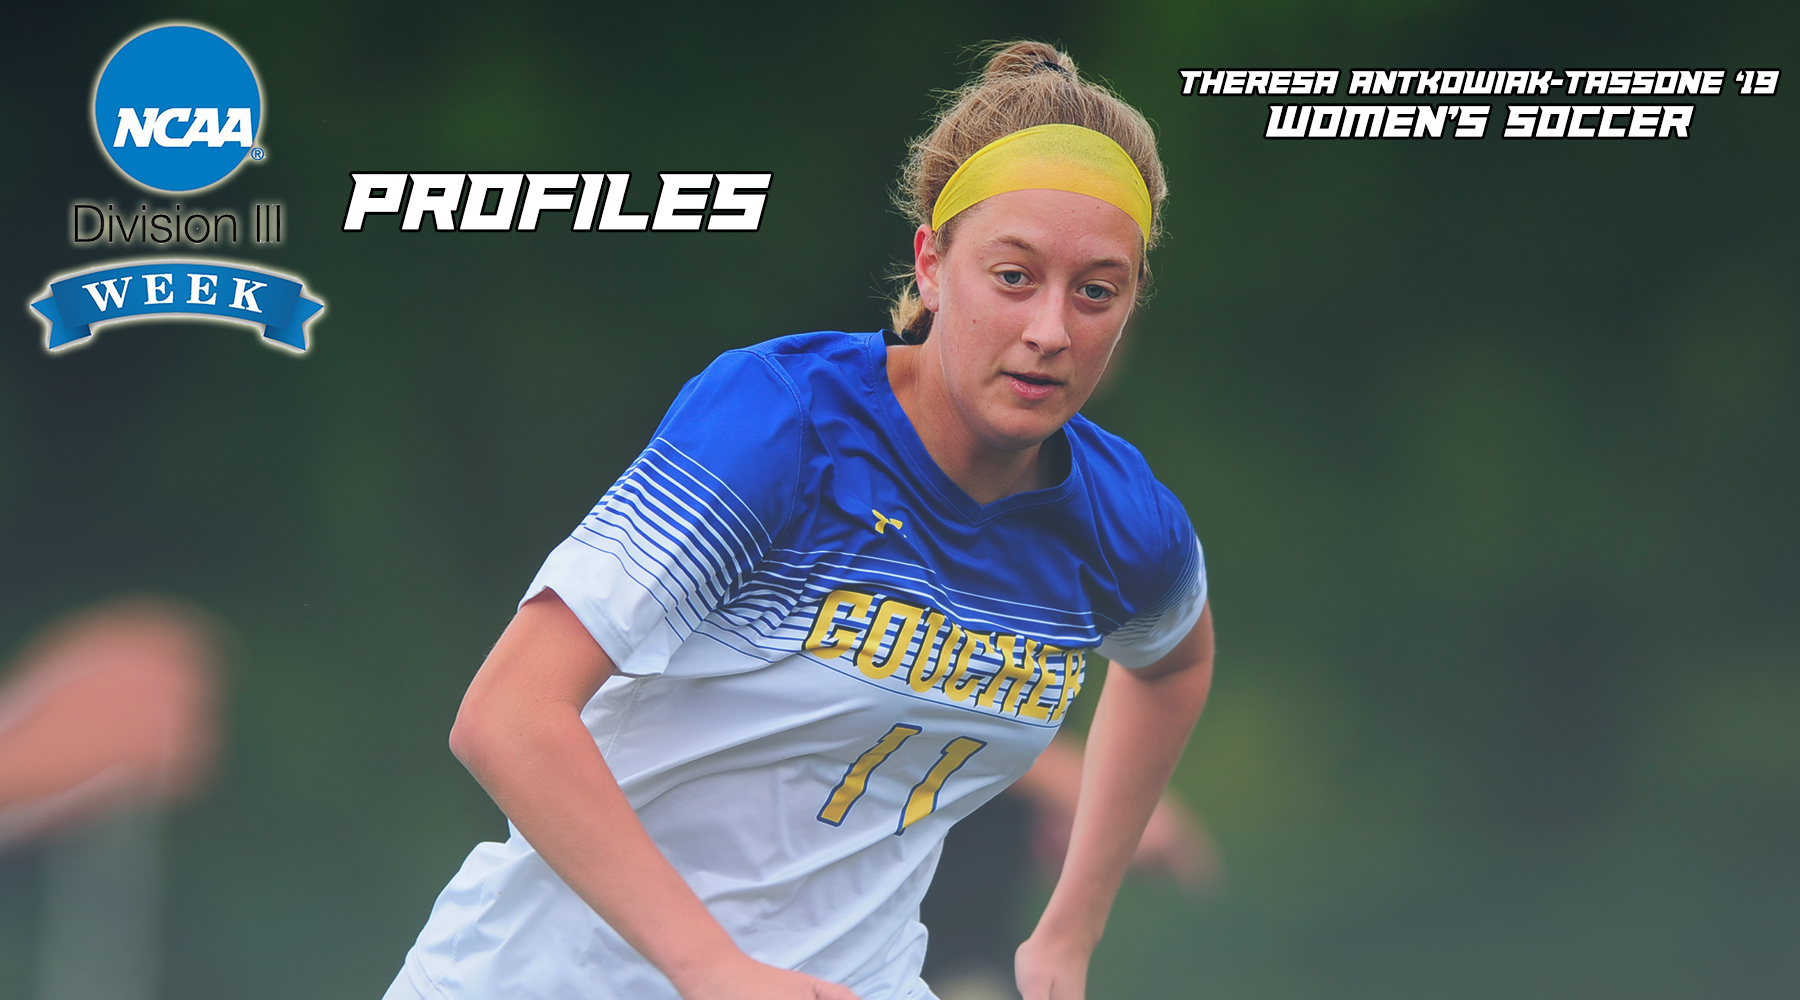 NCAA Division III Week Profiles: Women's Soccer's Theresa Antkowiak-Tassone